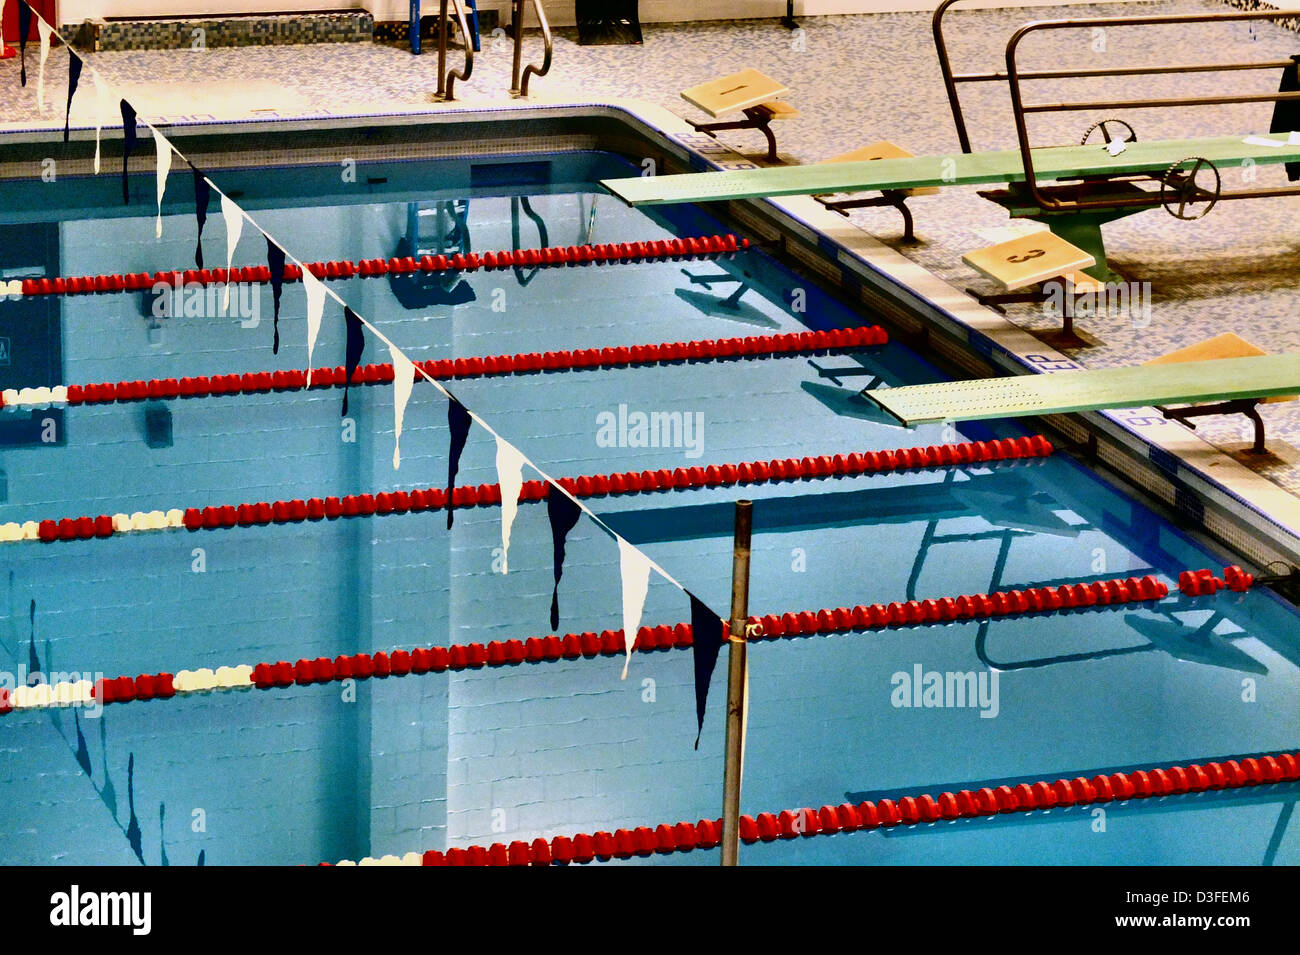 A School Pool, or natatorium used for athletics in Connecticut, USA (Stylized with special film technique - Stock Image